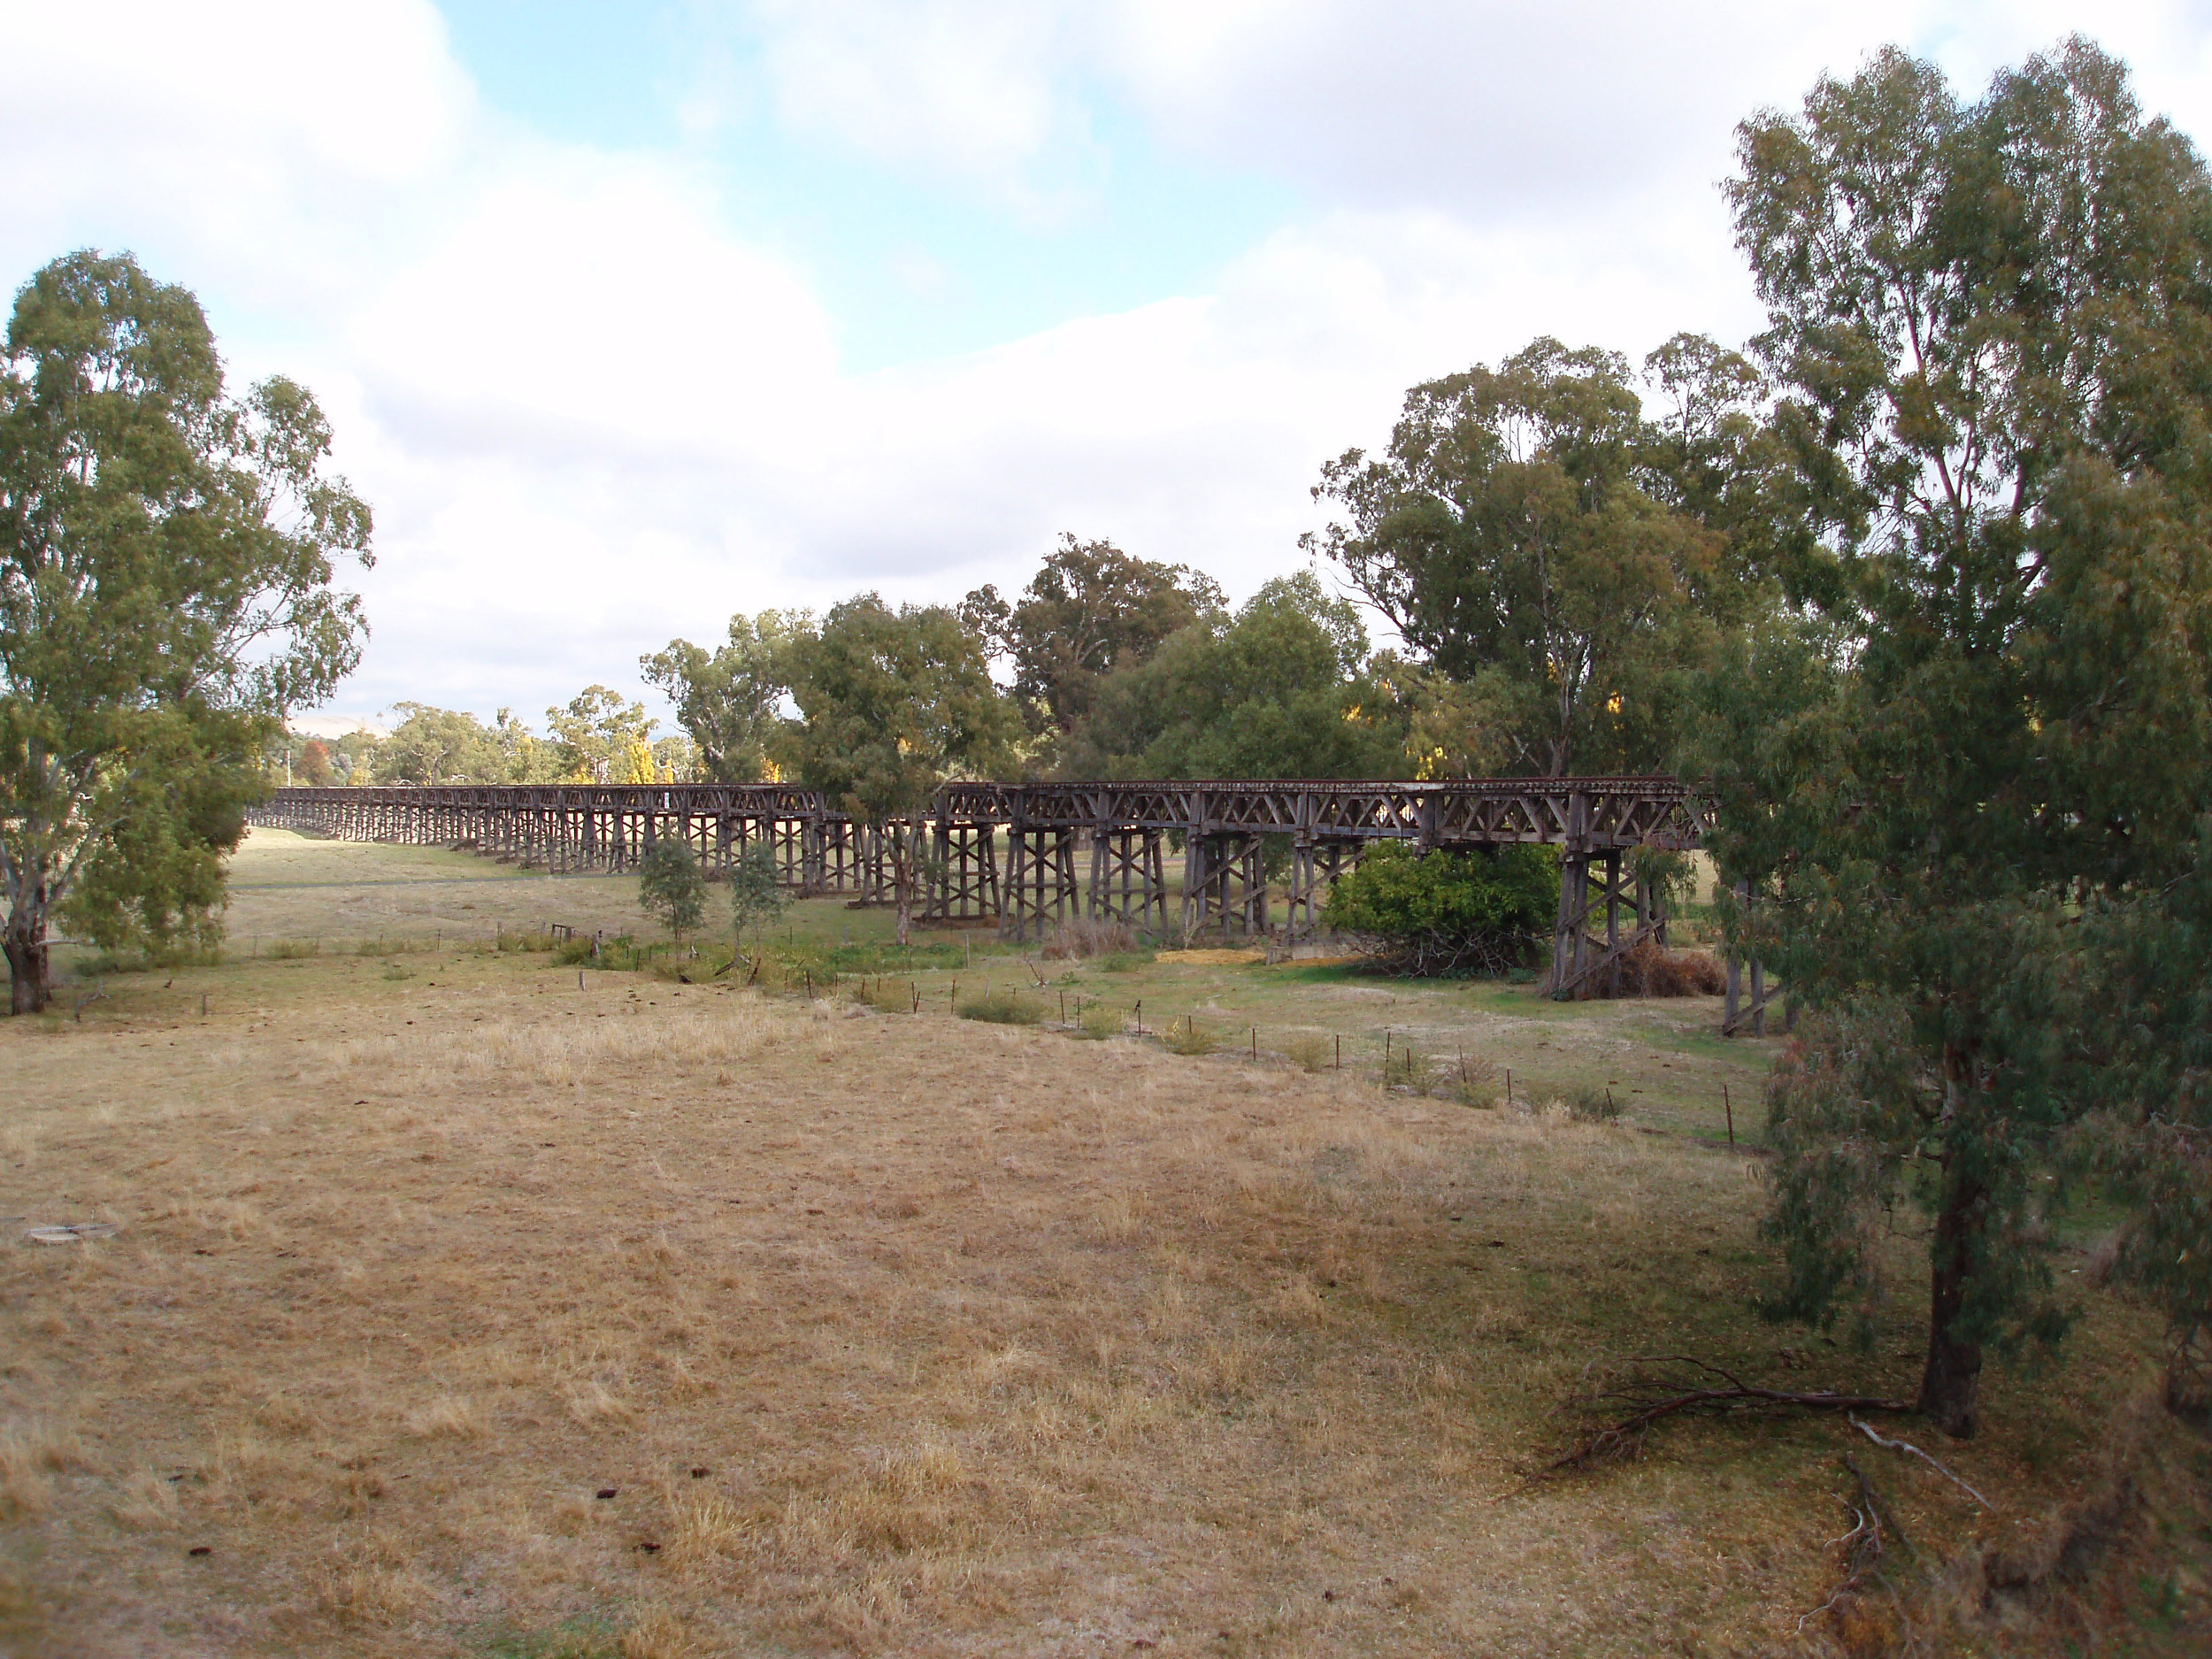 historic old rail bridge across the Murrumbidgee River, Gundagai